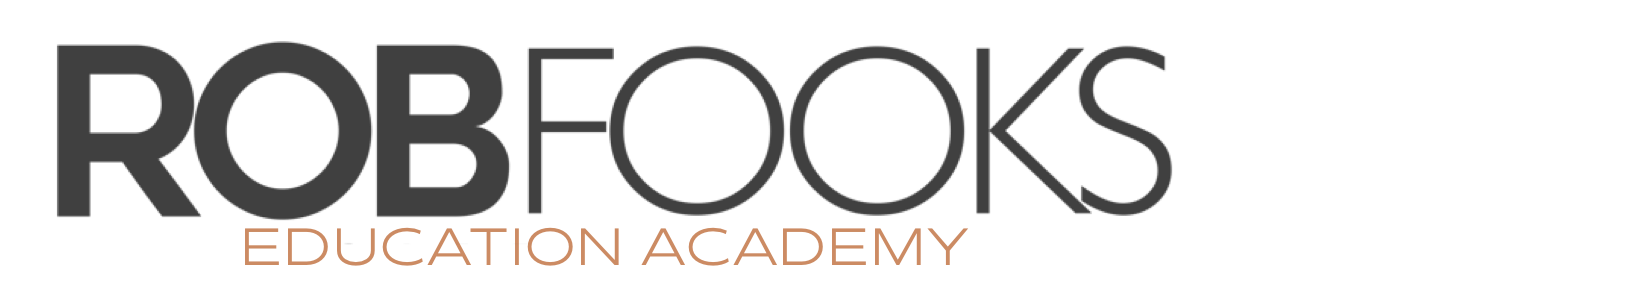 Rob Fooks Education Academy